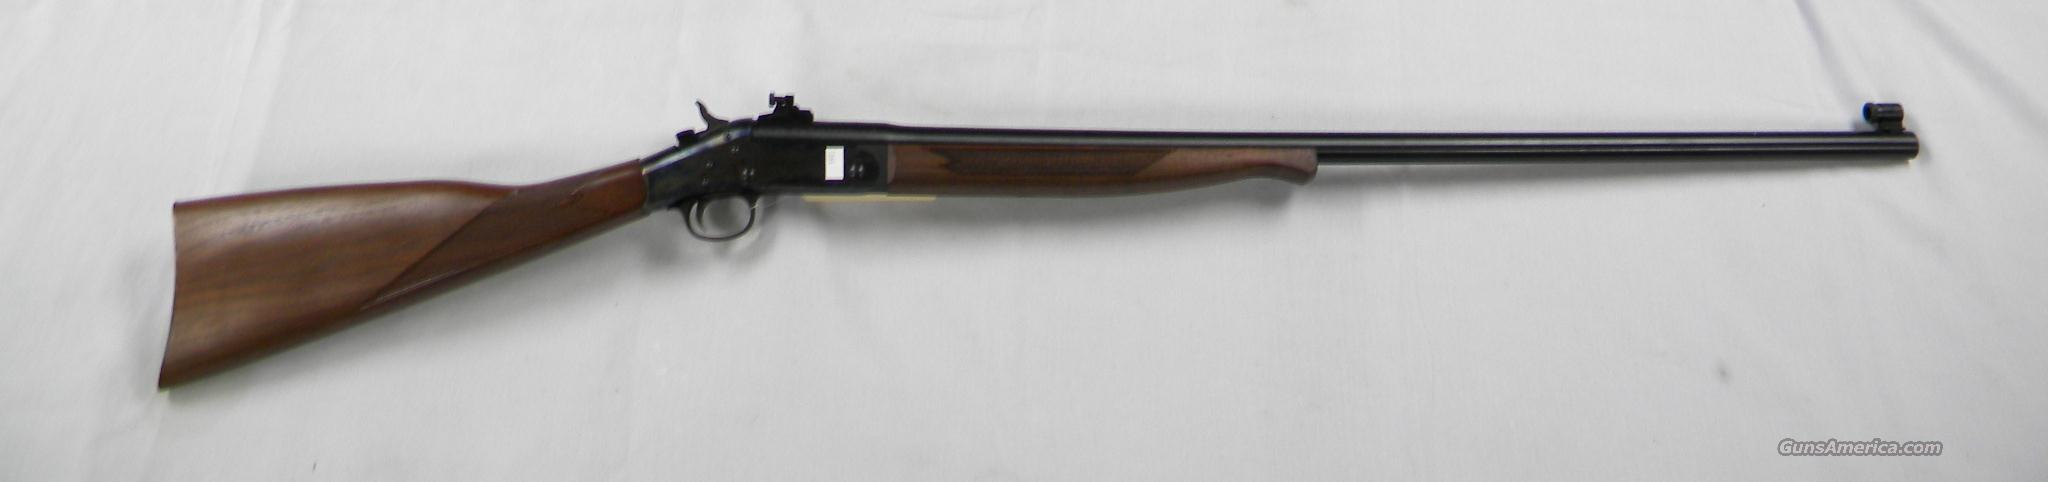 H&R CR 1871 Buffalo Classic / 45-70  Guns > Rifles > Harrington & Richardson Rifles